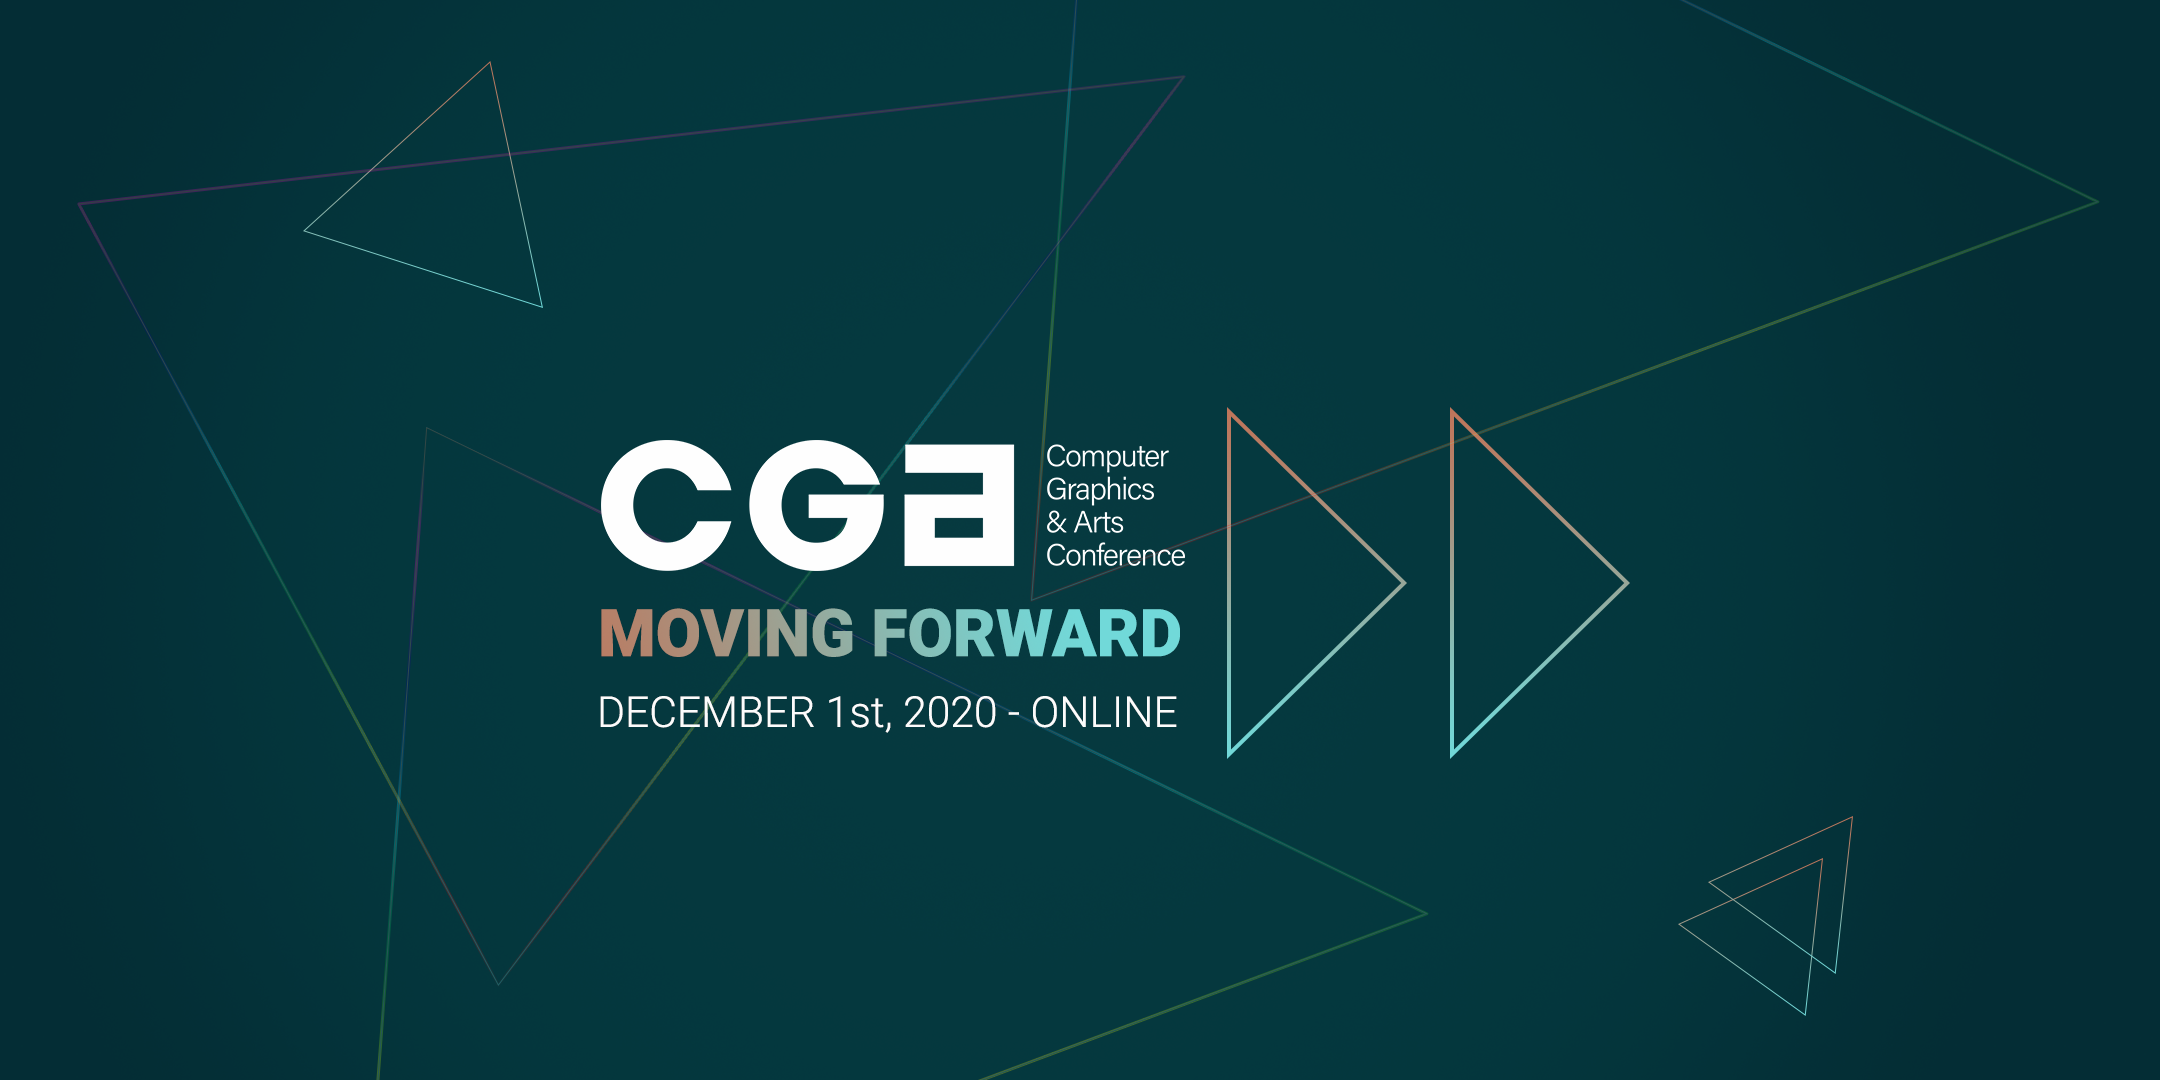 CGA Belgrade is moving forward – REGISTRATIONS FOR ONLINE Conference are open